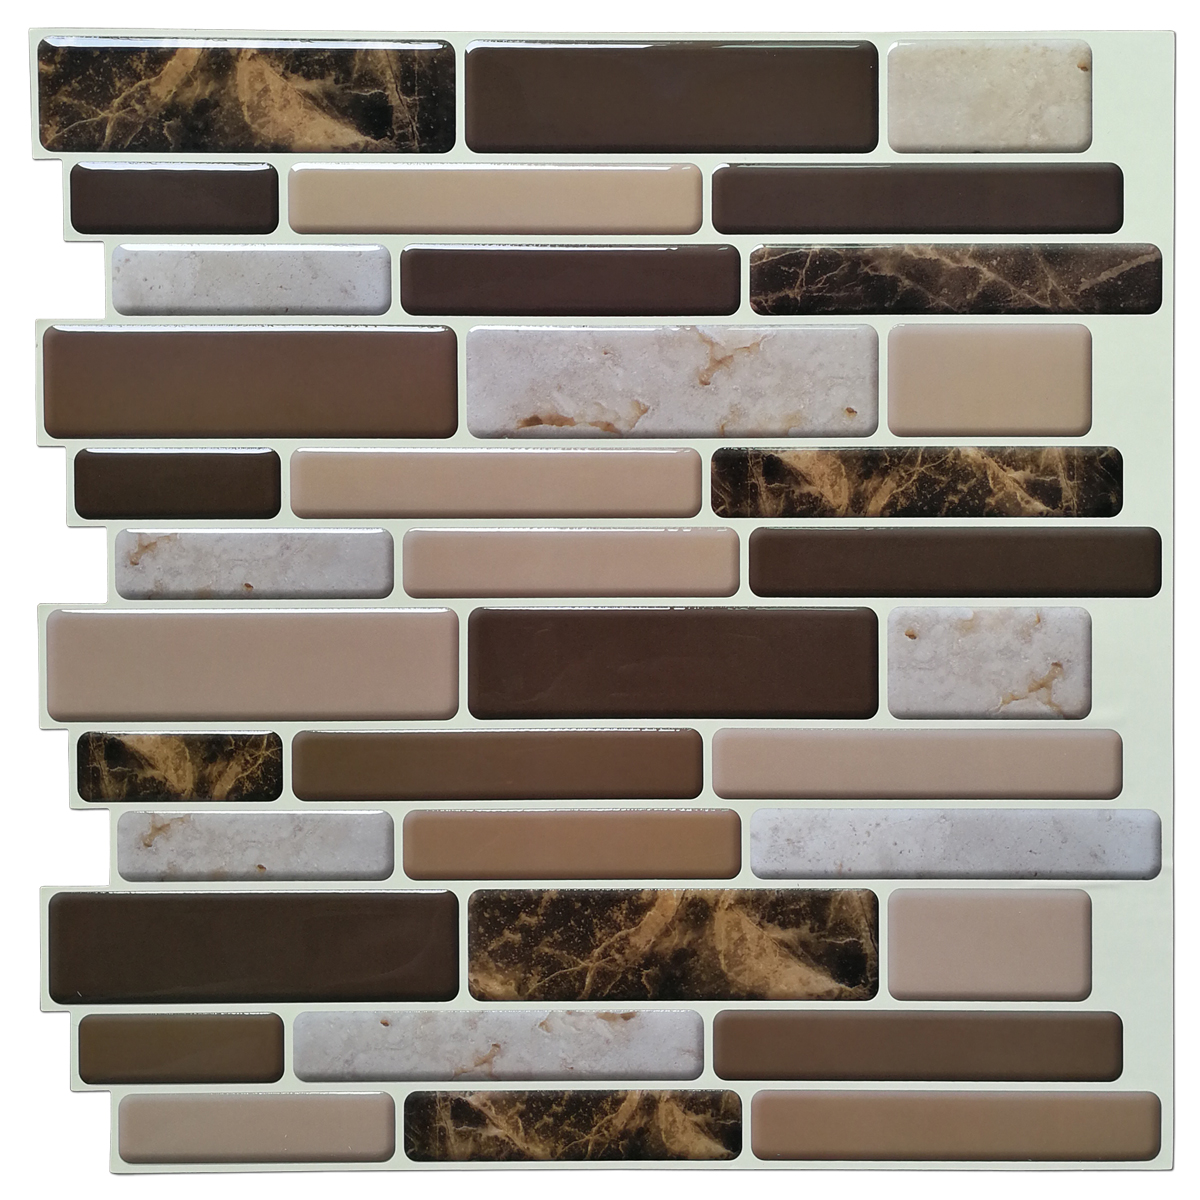 Self Adhesive Wall Tile Peel and Stick Backsplash for Kitchen, Marble Design (10 Tiles)